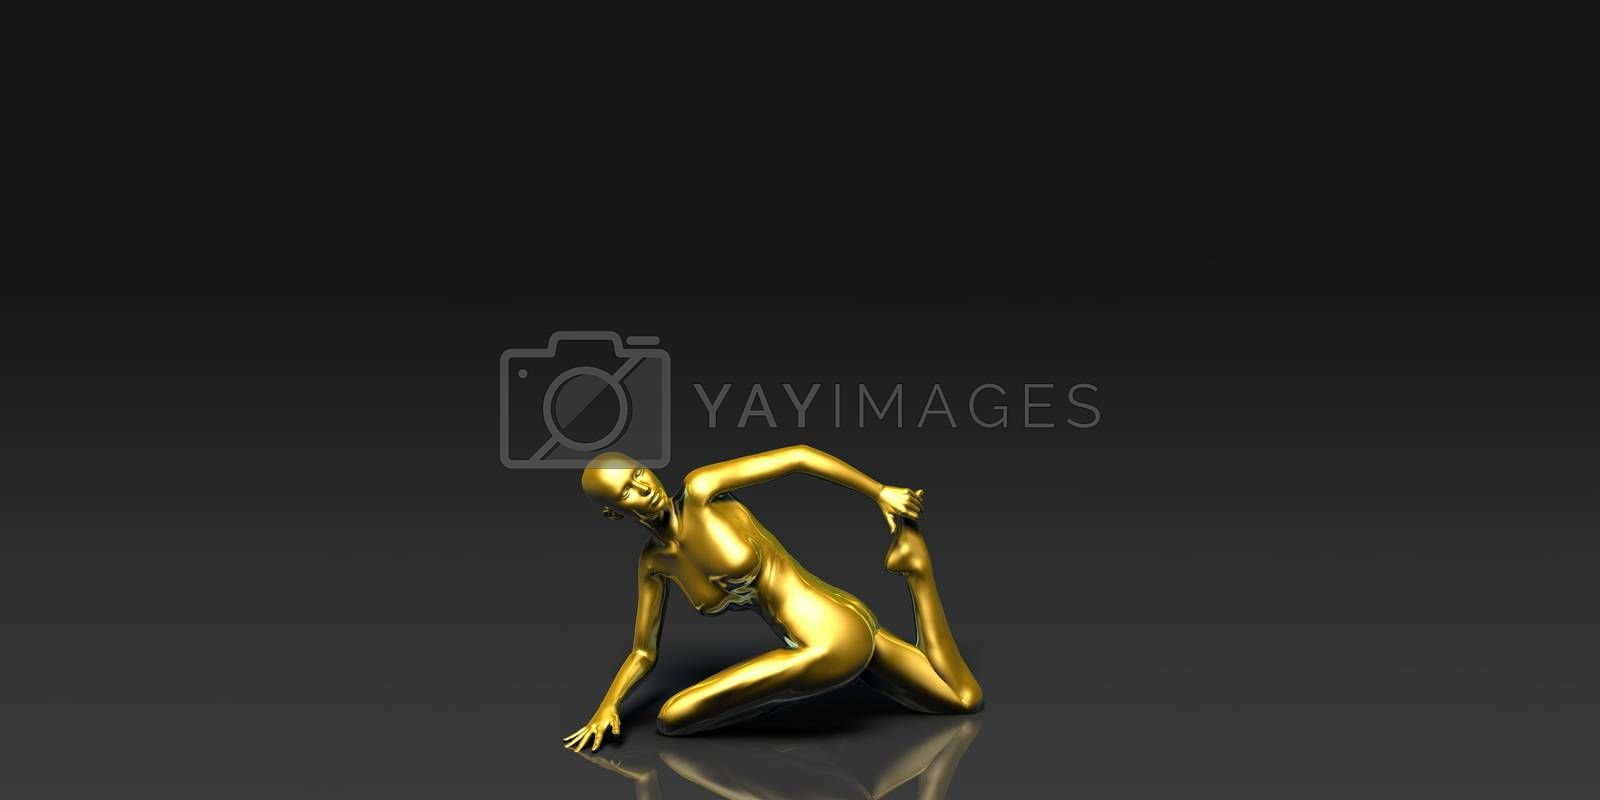 Yoga Pose, the Spine Twist Basic Poses Guide